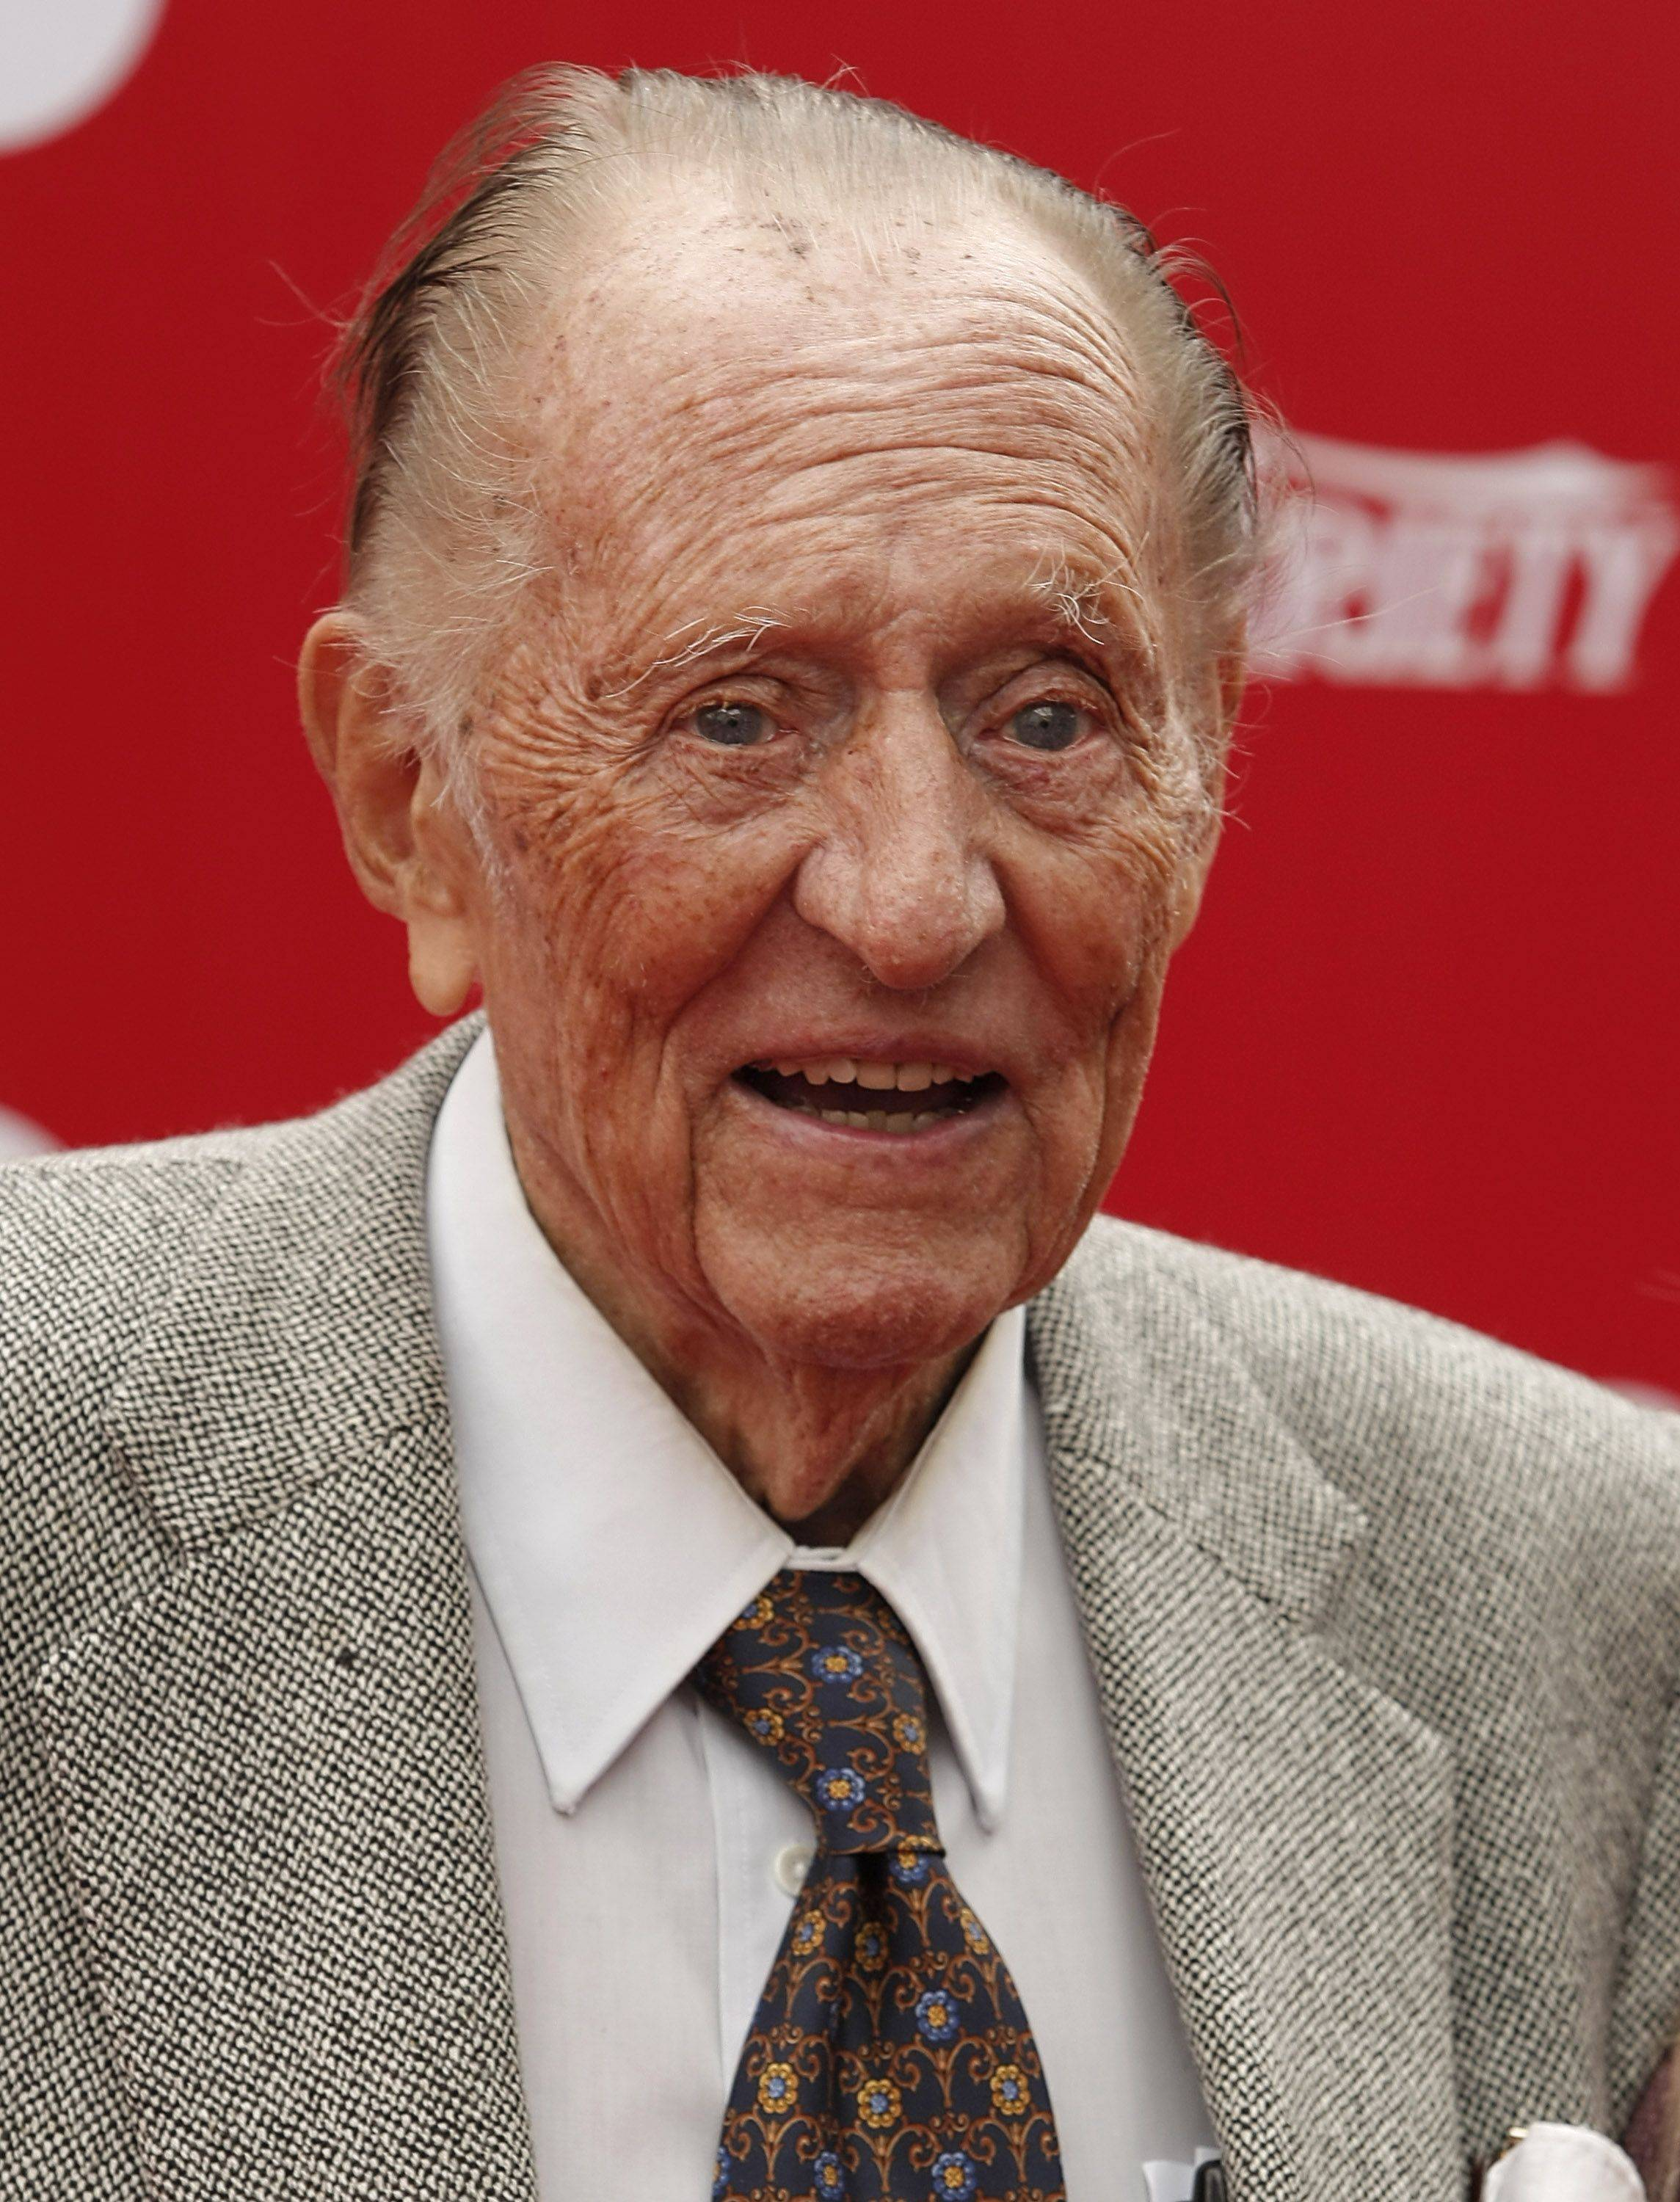 "Art Linkletter, who hosted the popular TV shows ""People Are Funny"" and ""House Party"" in the 1950s and 1960s, died May 26, 2010. He was 97."